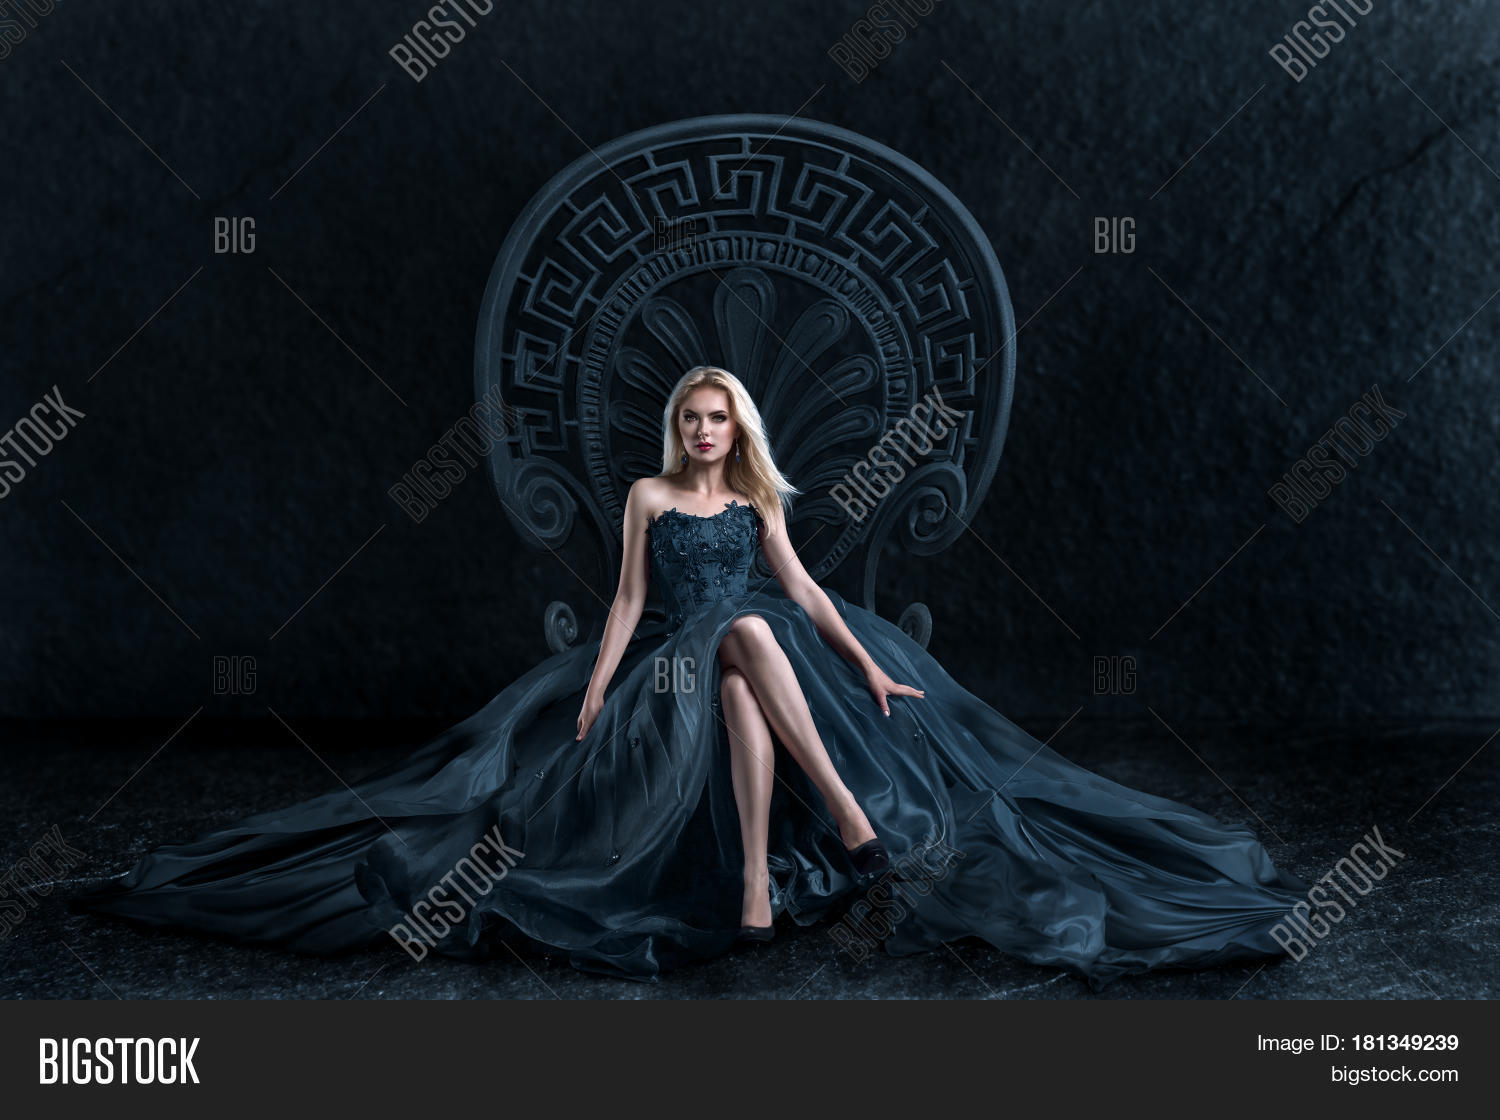 Blonde Woman Sitting Image & Photo (Free Trial) Bigstock